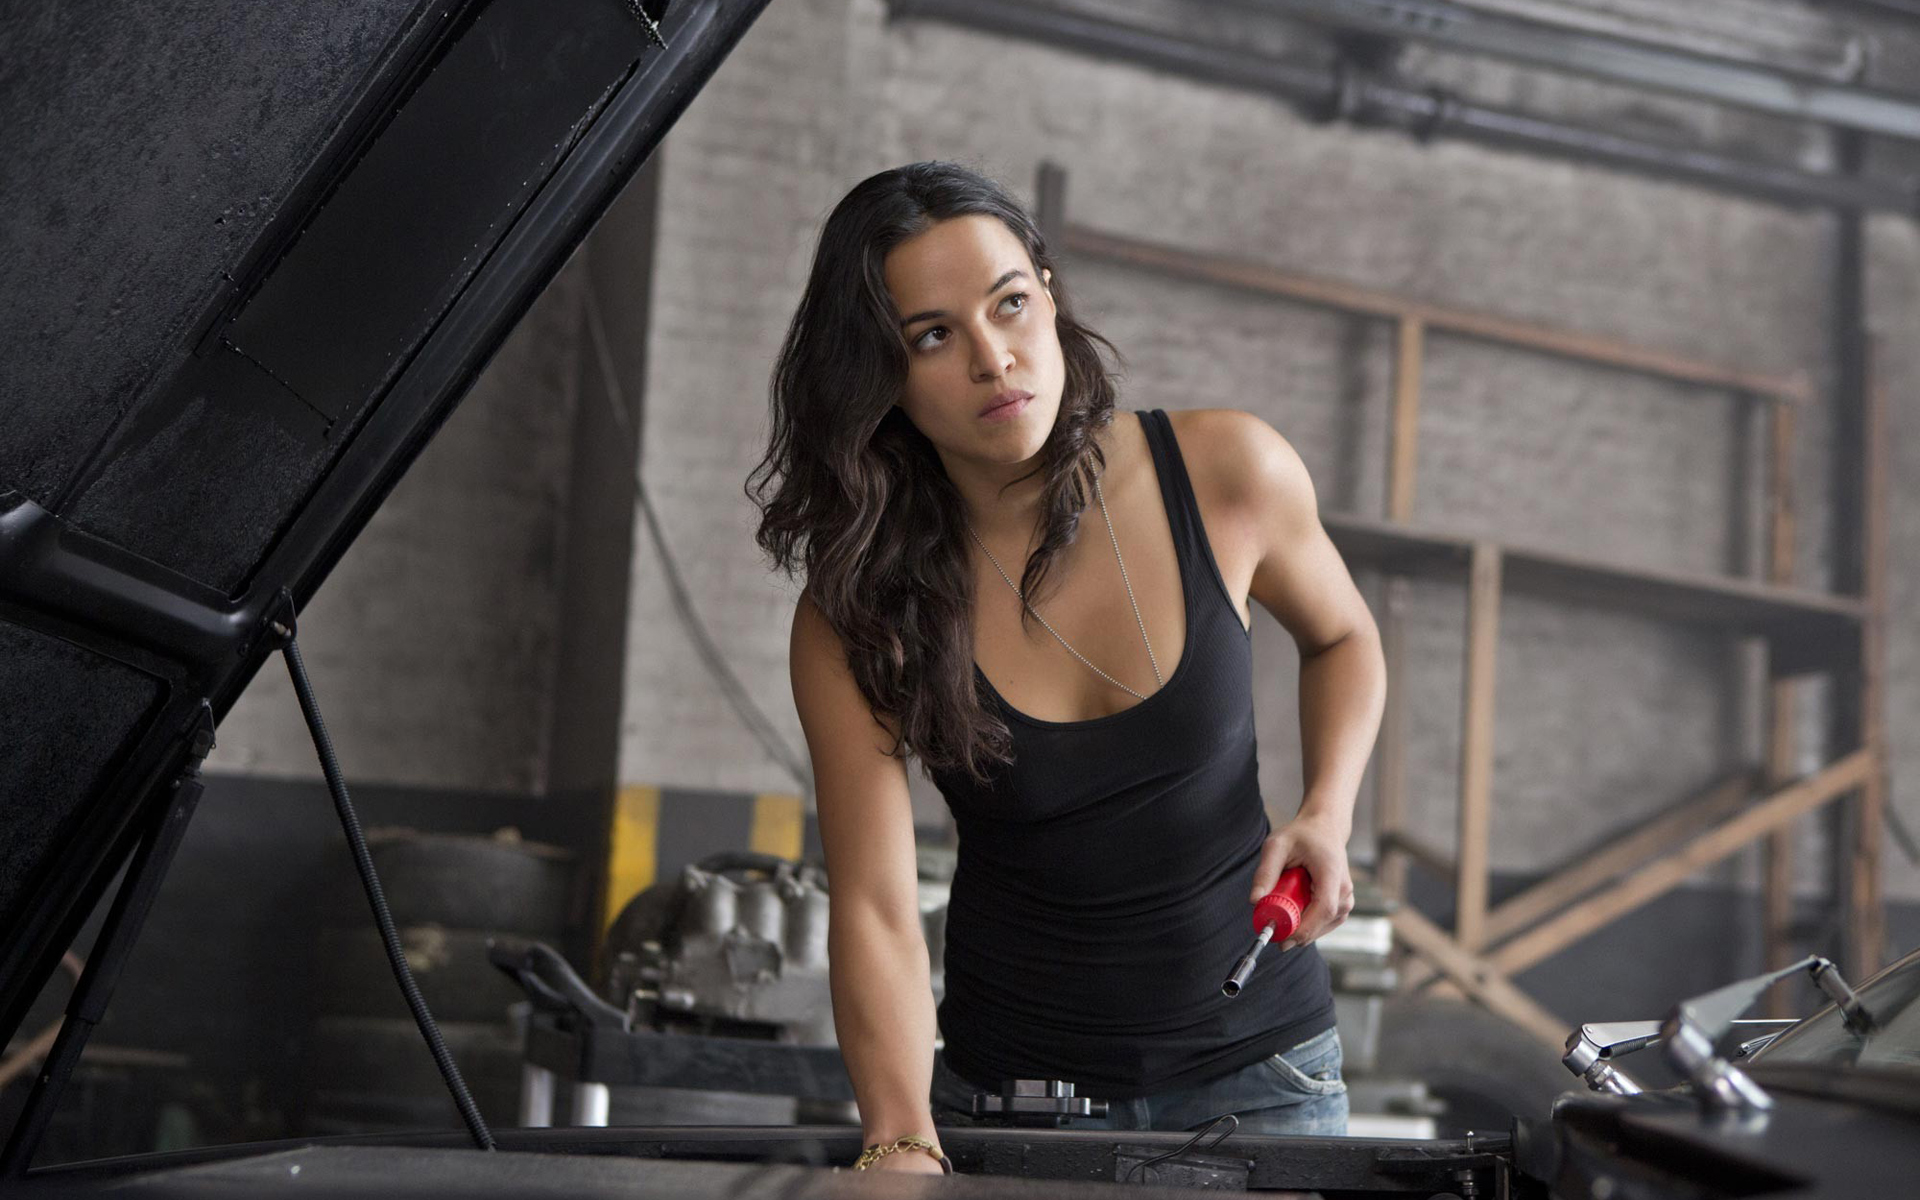 Fast And Furious 5 Cars Wallpapers Hd Fast Amp Furious 6 2013 Letty Ortiz Hd Wallpaper